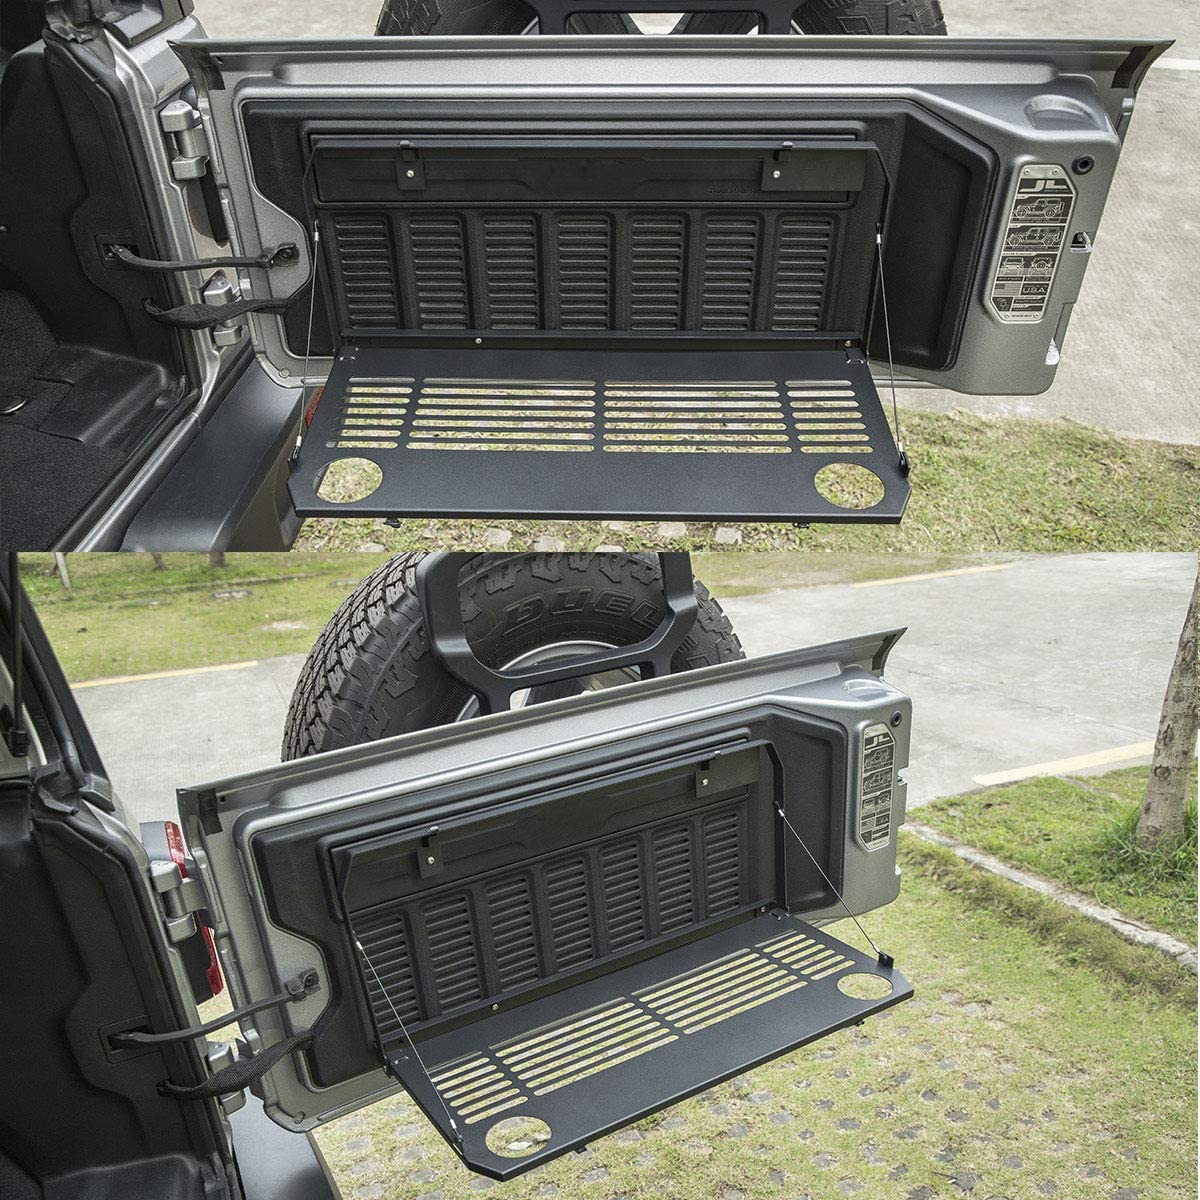 LE-JX Wrangler Black Flexible Rear Door Table Foldable Storage Cargo Shelf Rack Rear Luggage Holder Carrier Compatible with 2018 2019 Jeep Wrangler JL JLU Trunk Multi-Purpose Foldaway Tailgate Table